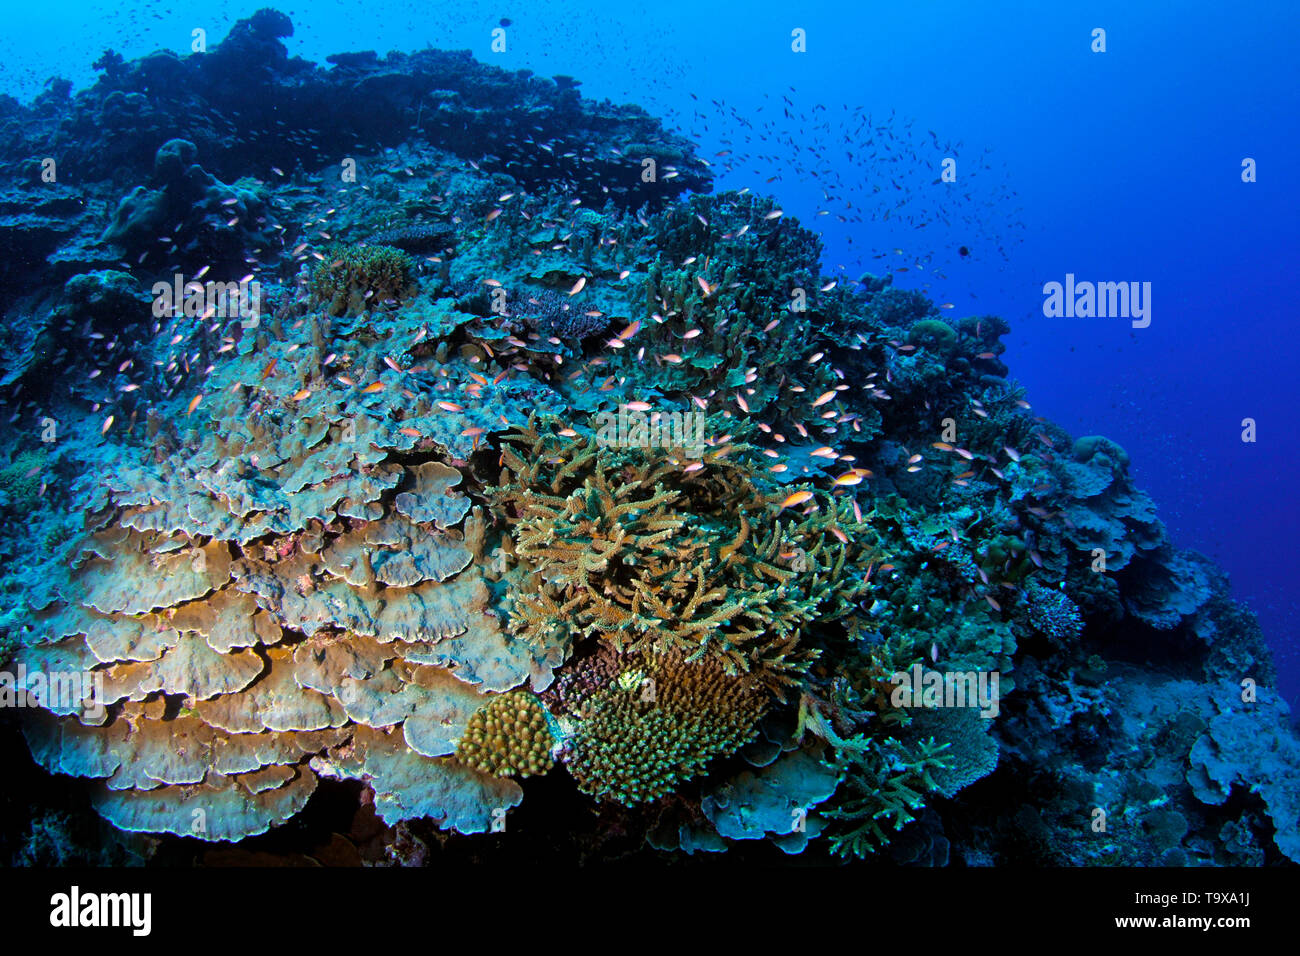 Coral reef scene underwater, Wallis Island, Wallis & Futuna, South Pacific - Stock Image